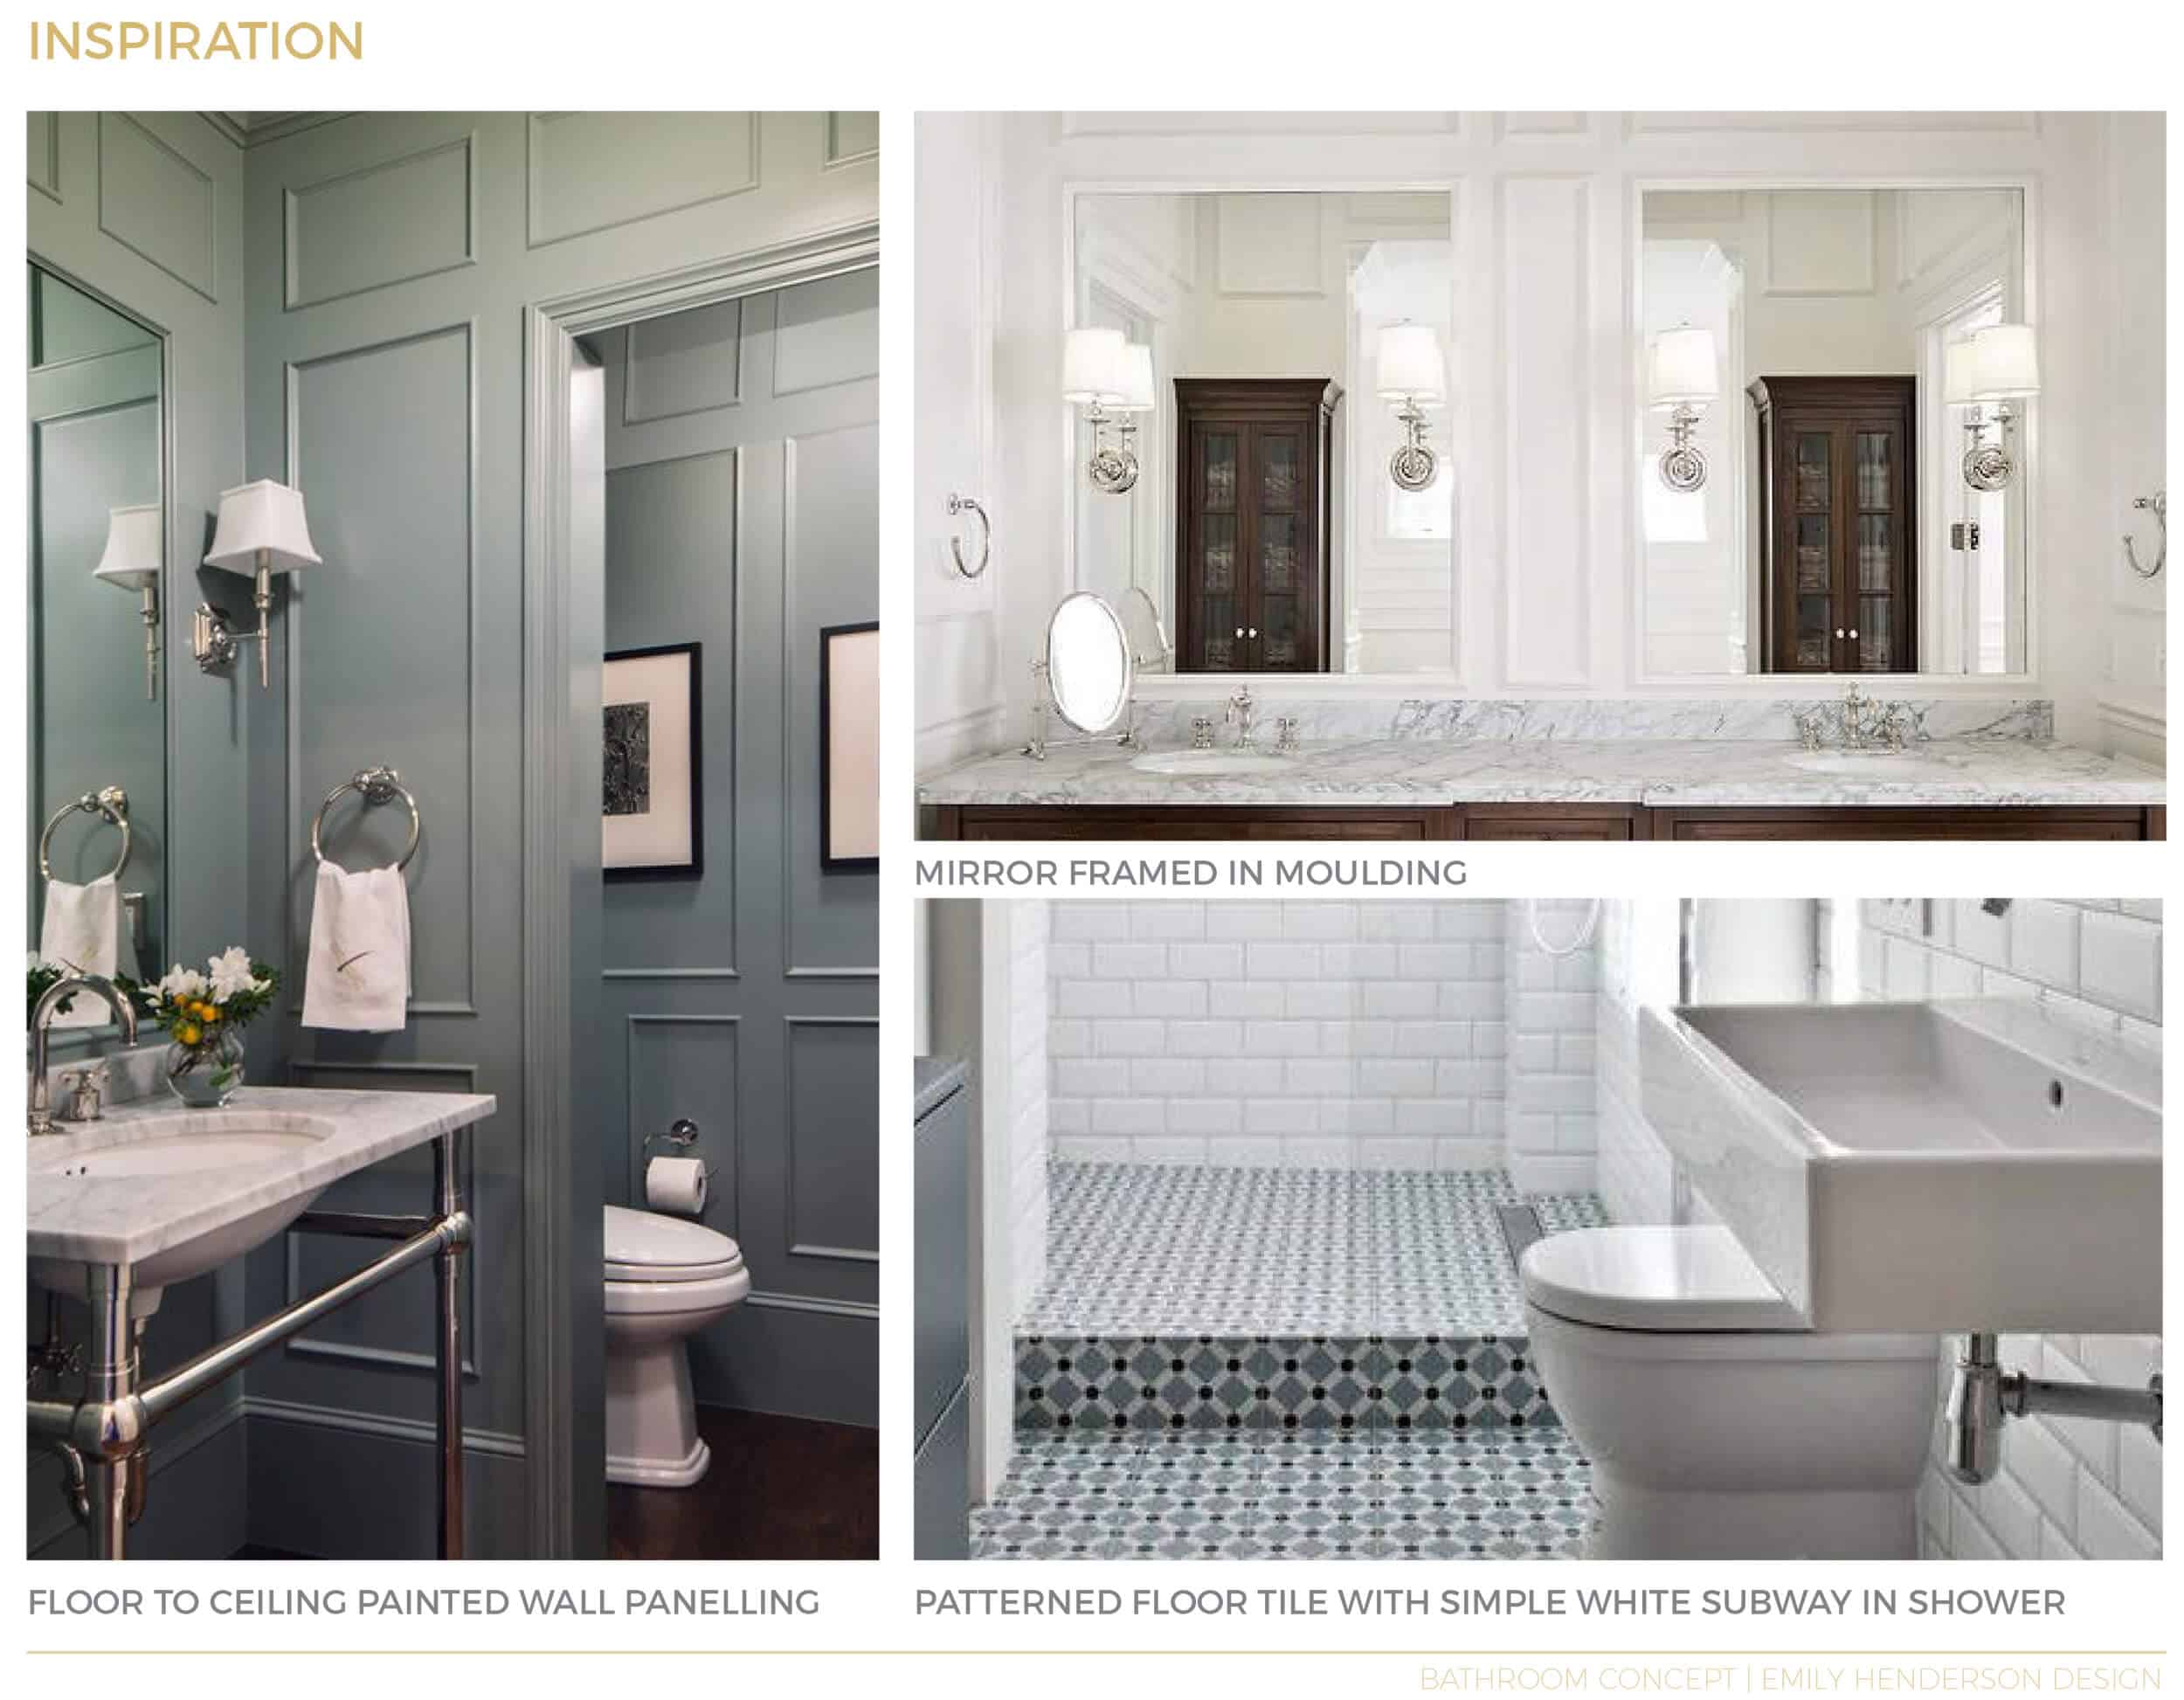 Emily-Henderson_Silver-Lake-Hills-Home_Master-Bathroom_Intro_Inspiration